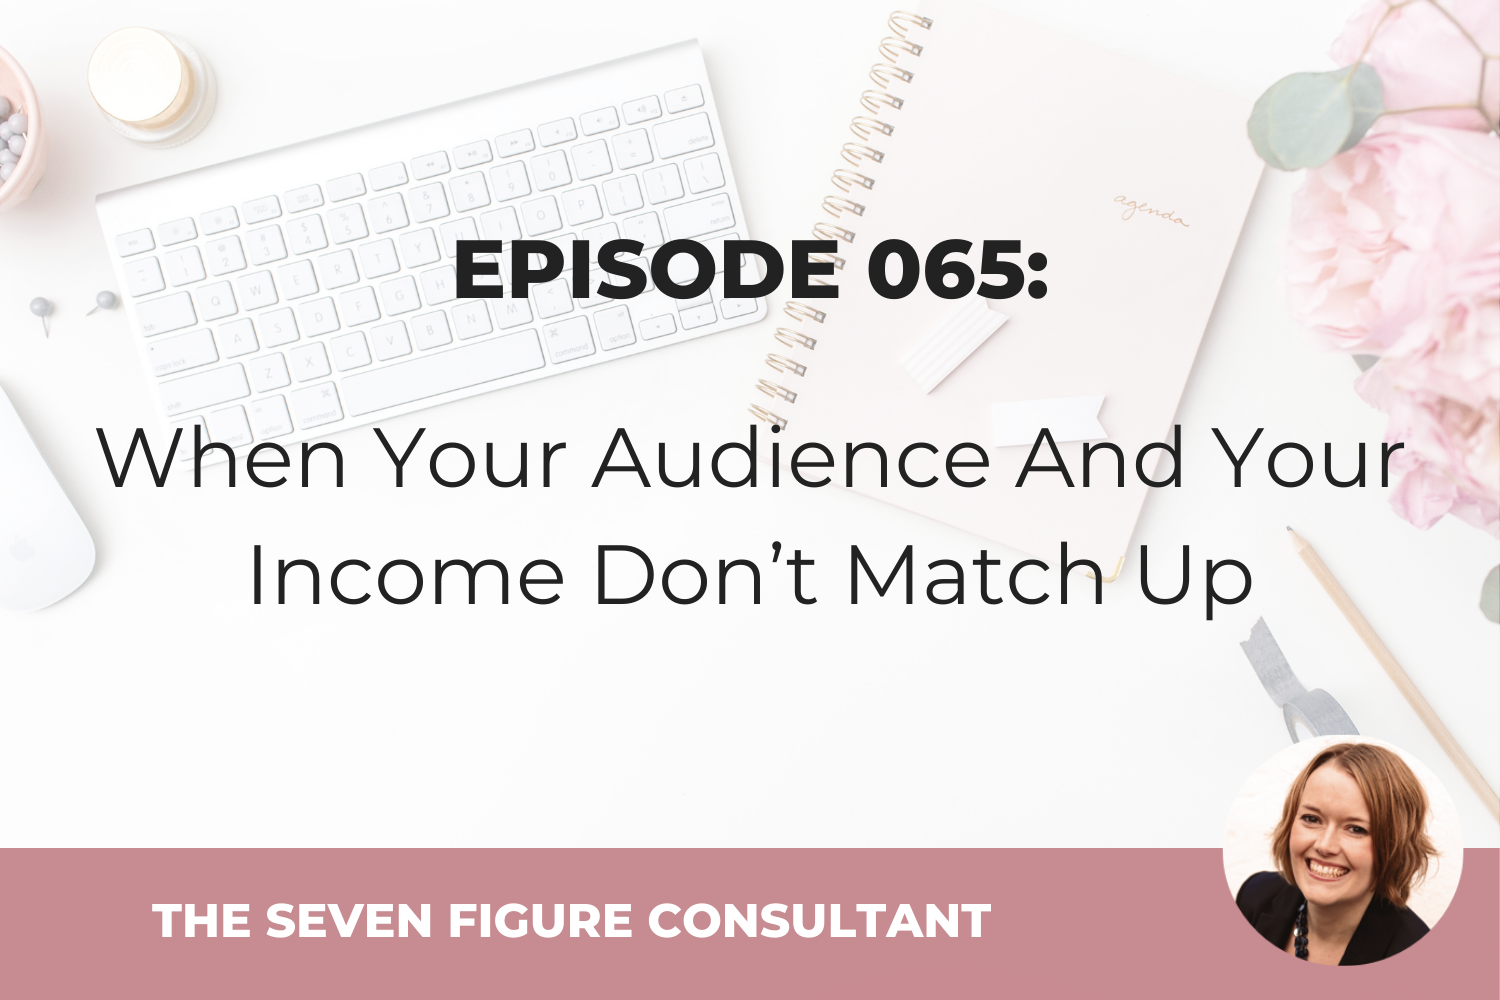 Episode 065: When Your Audience And Your Income Don't Match Up